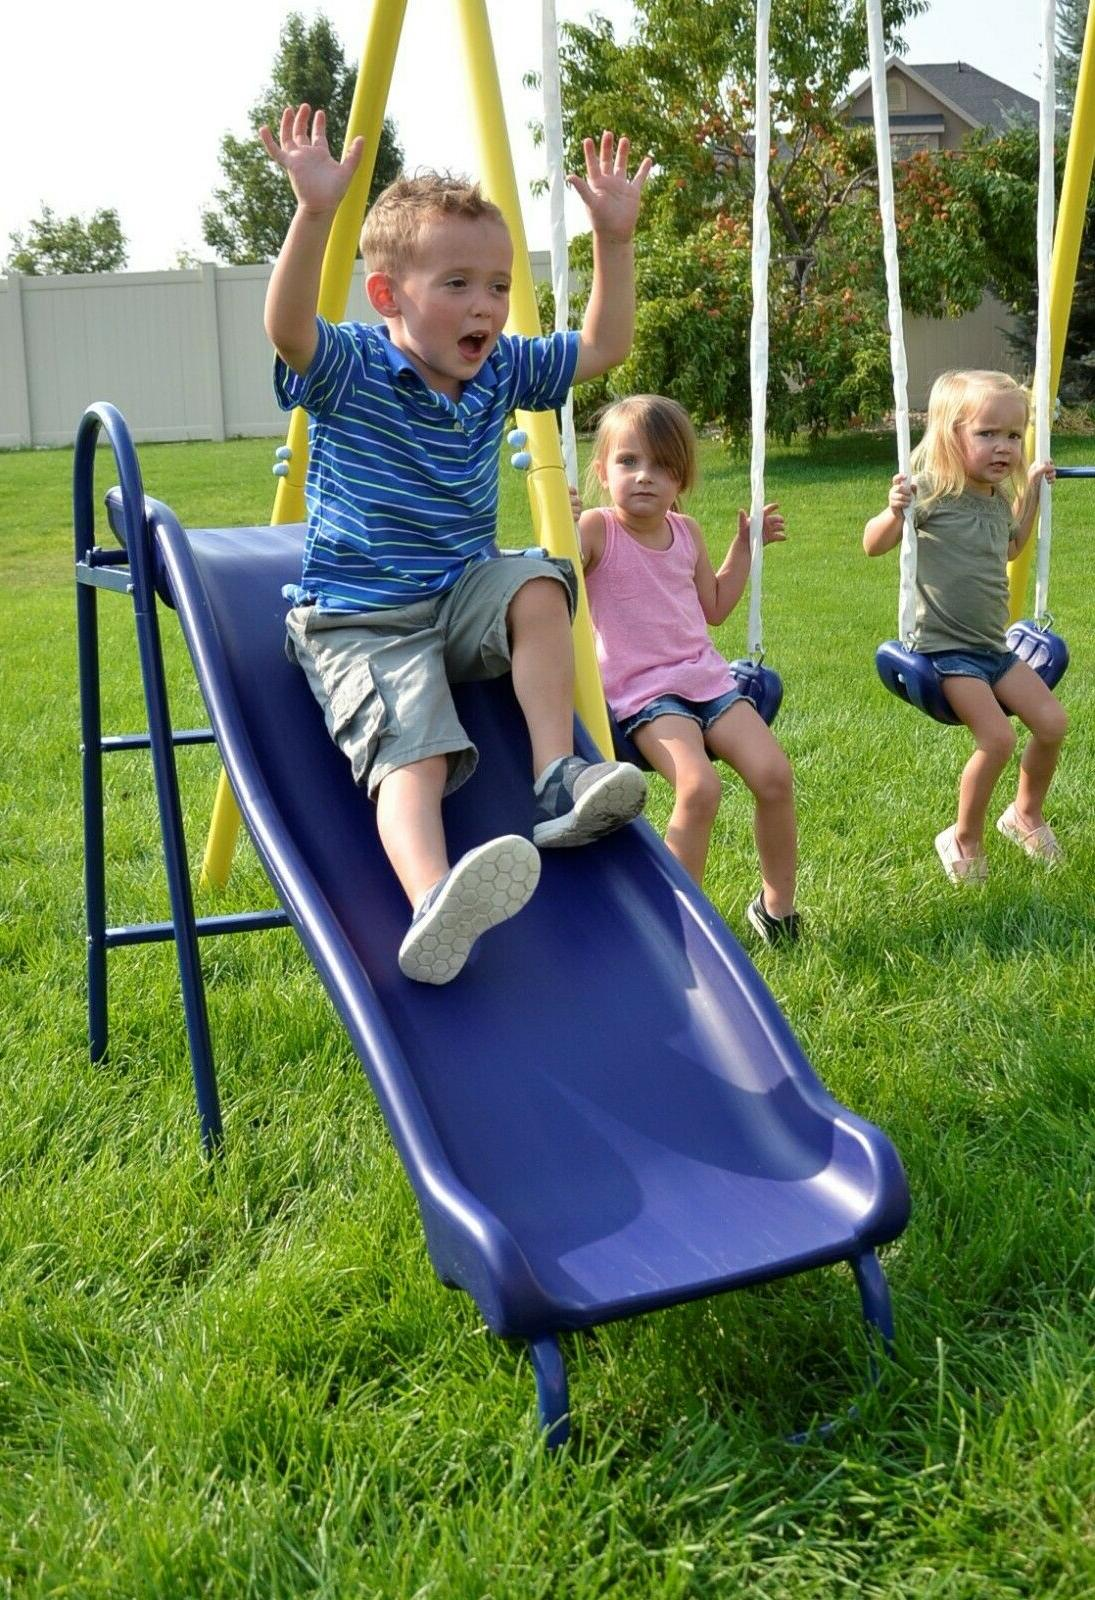 Fun Kids Playground Slide Outdoor Backyard Playset